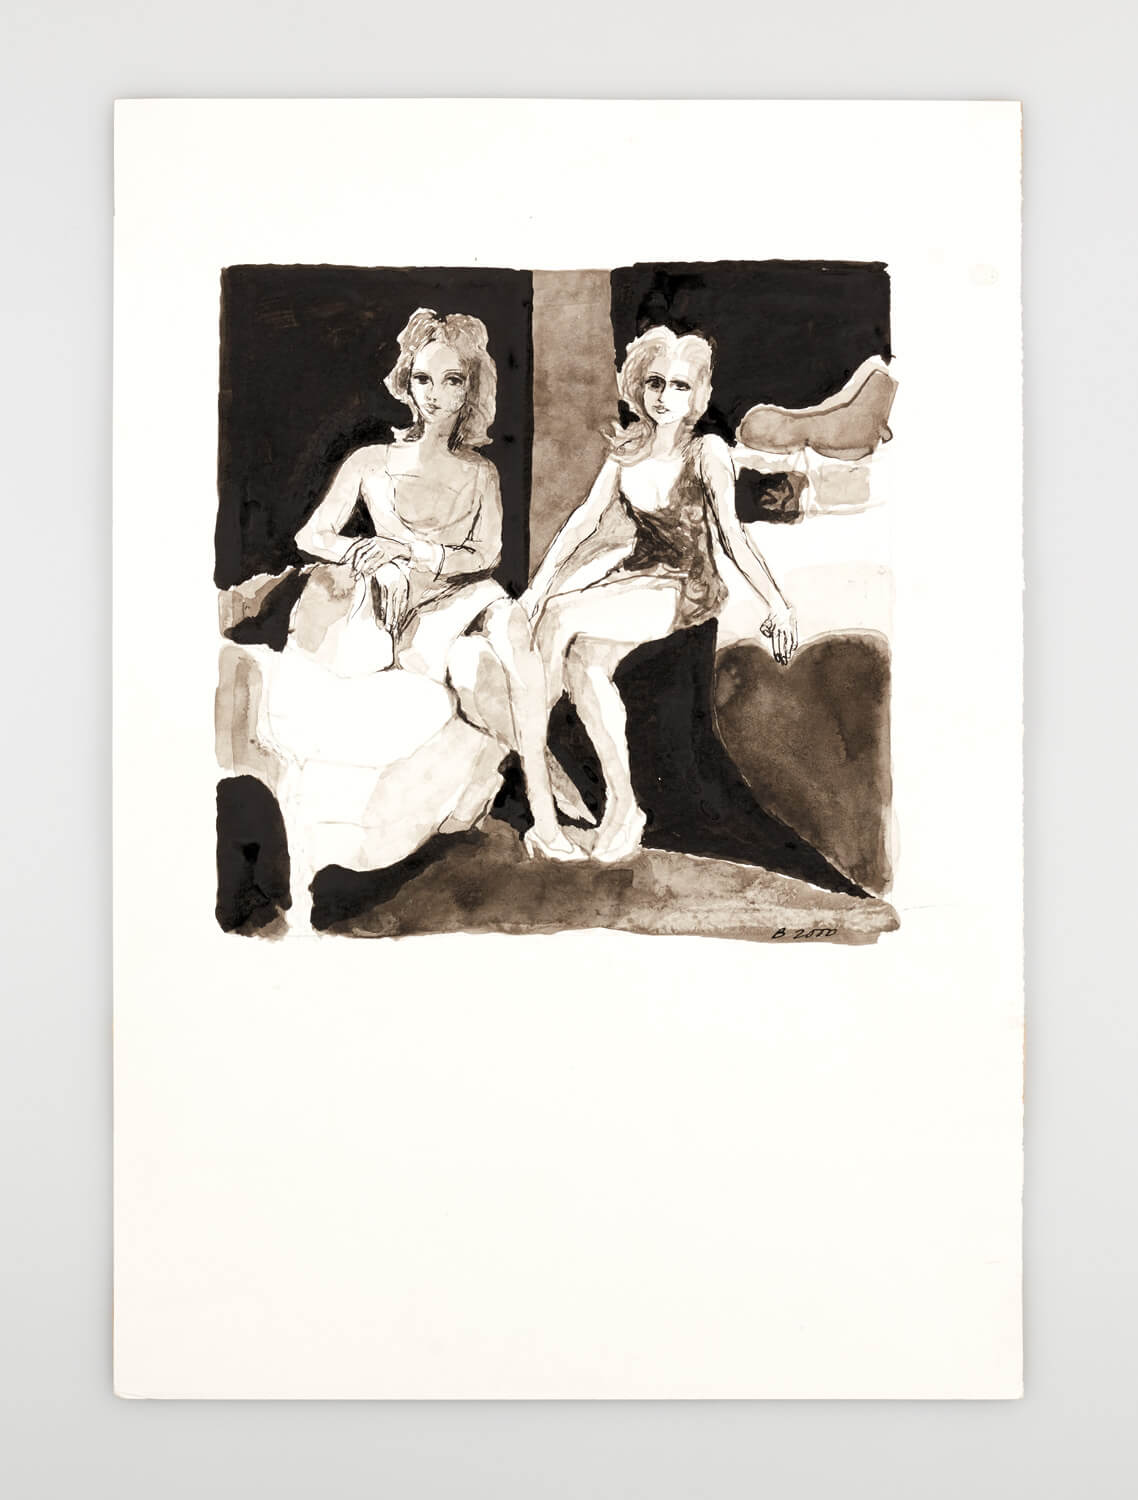 JB113 - Two Mannequins sitting in a bedroom - 2000 - 26 x 26 cm - Indian ink and wash on paper